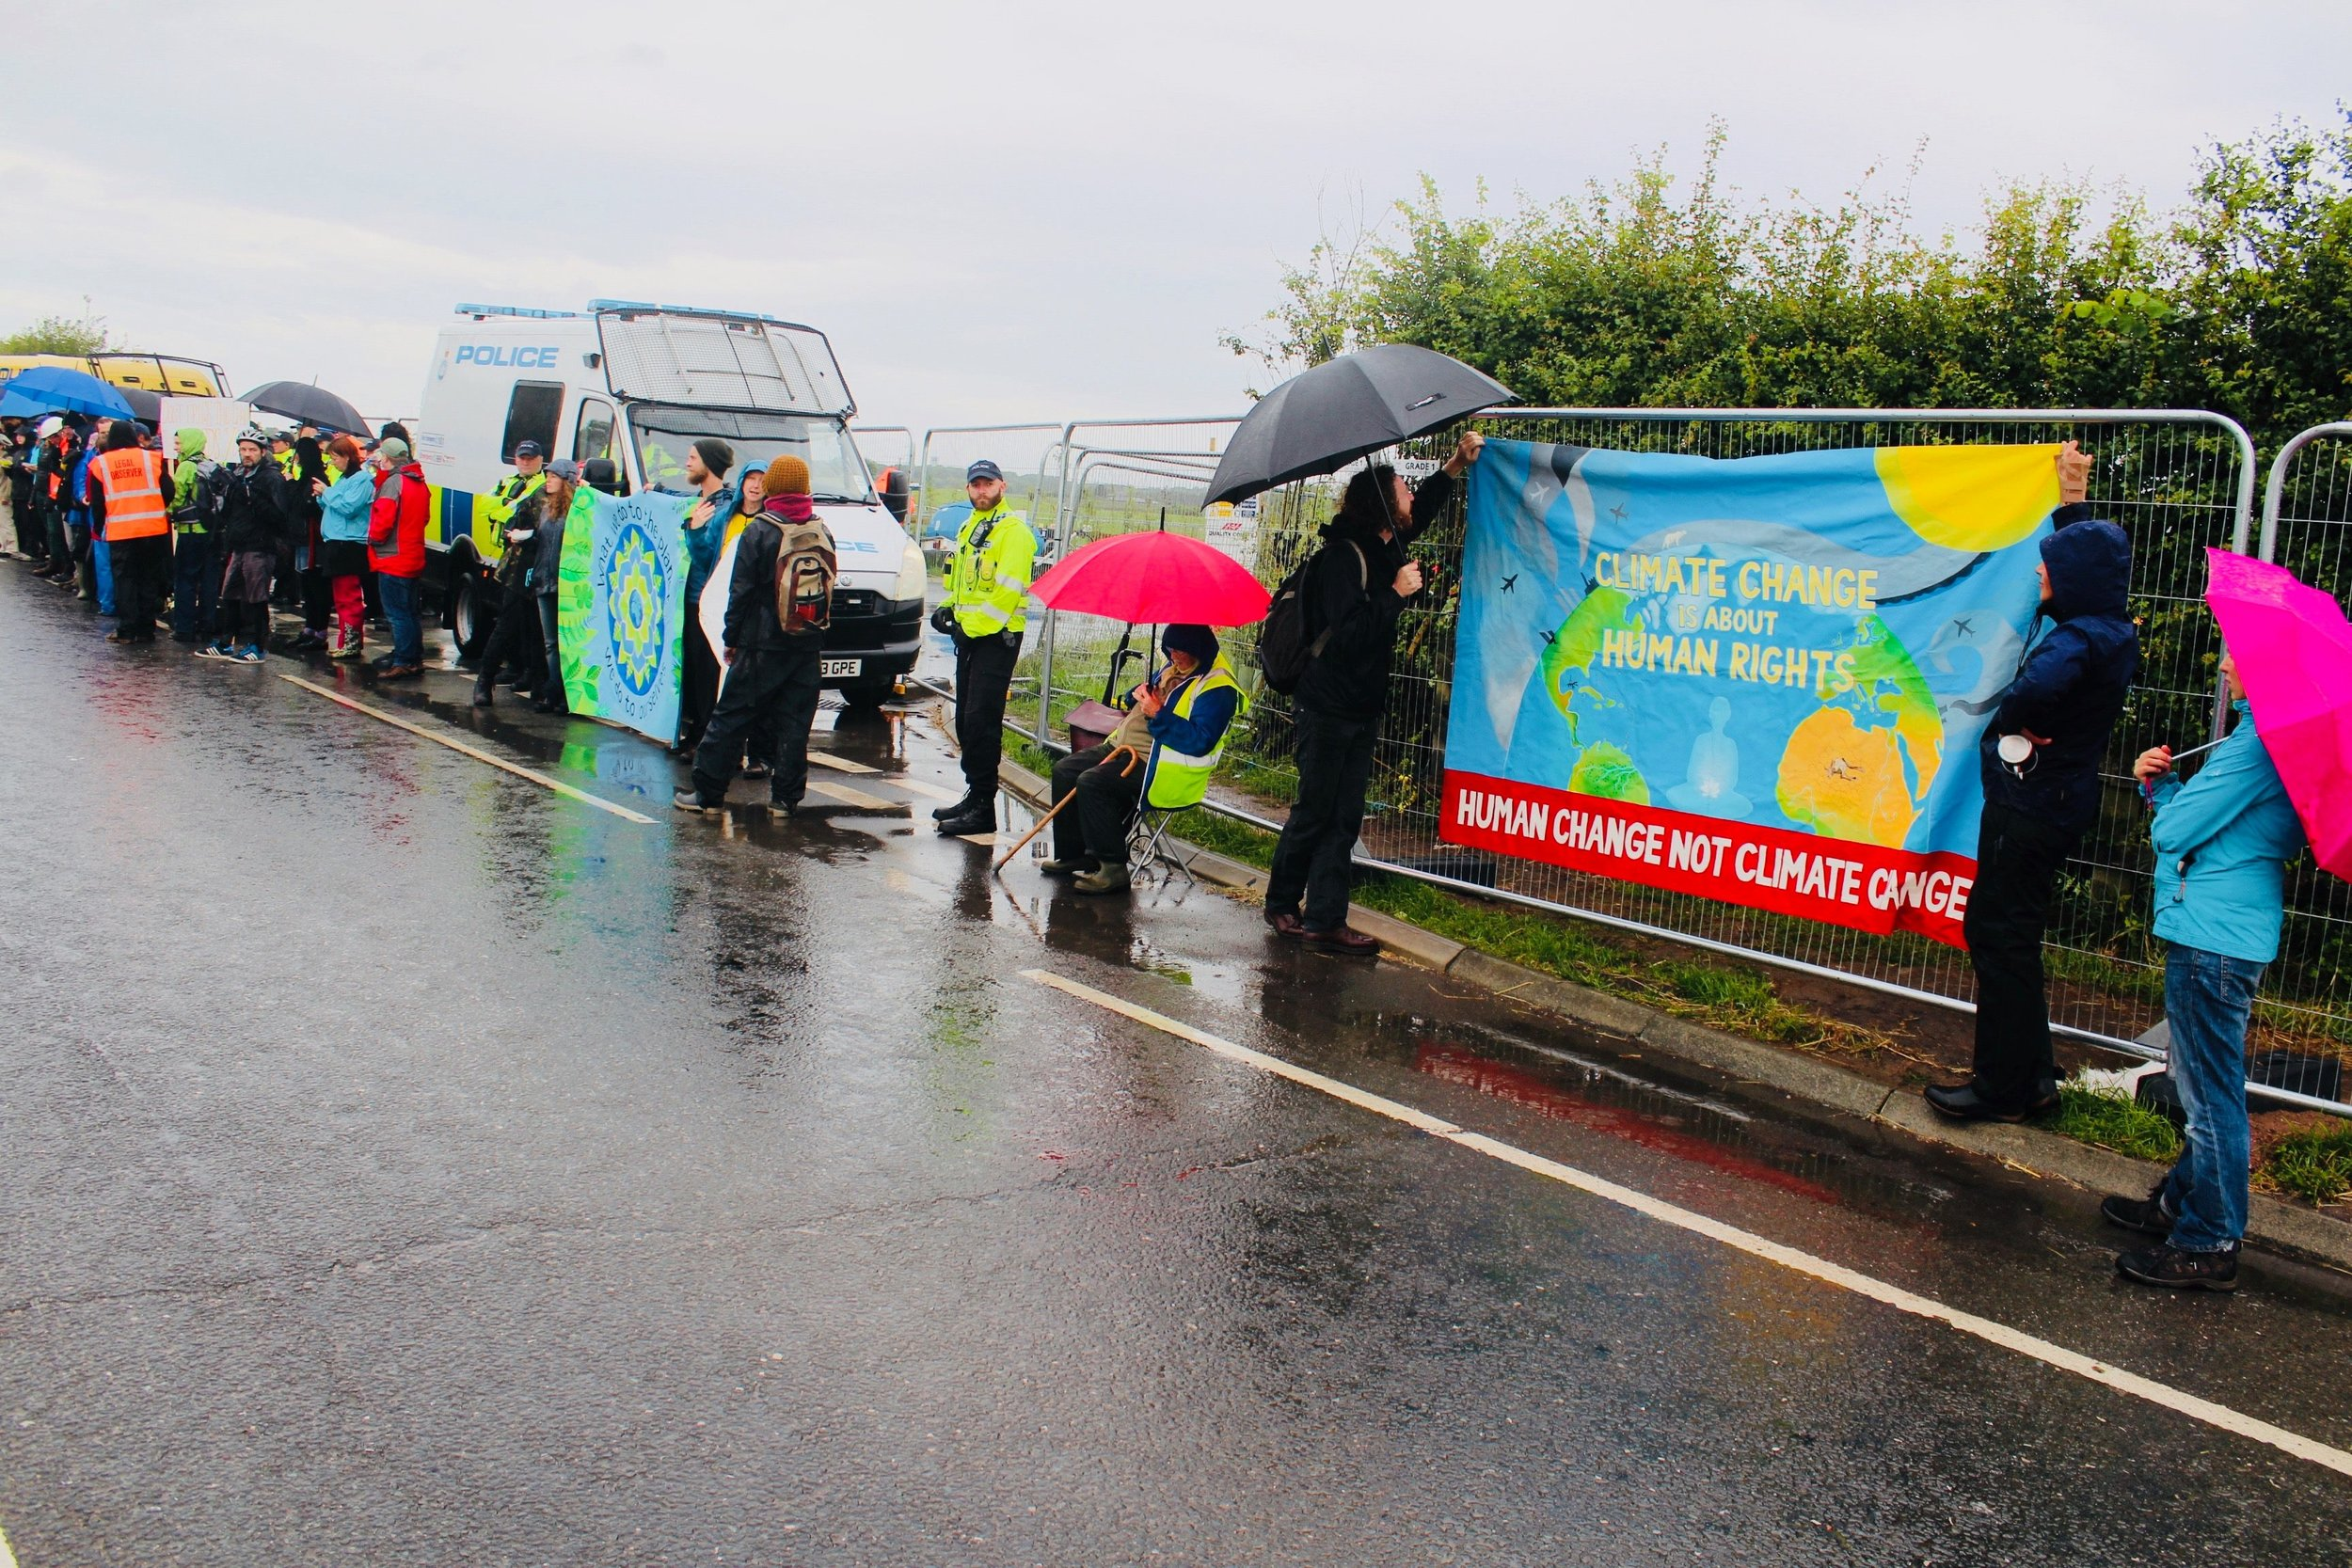 'What we do to the planet, we do to ourselves.' Anti-Fracking Protest in Lancashire. Taken by myself